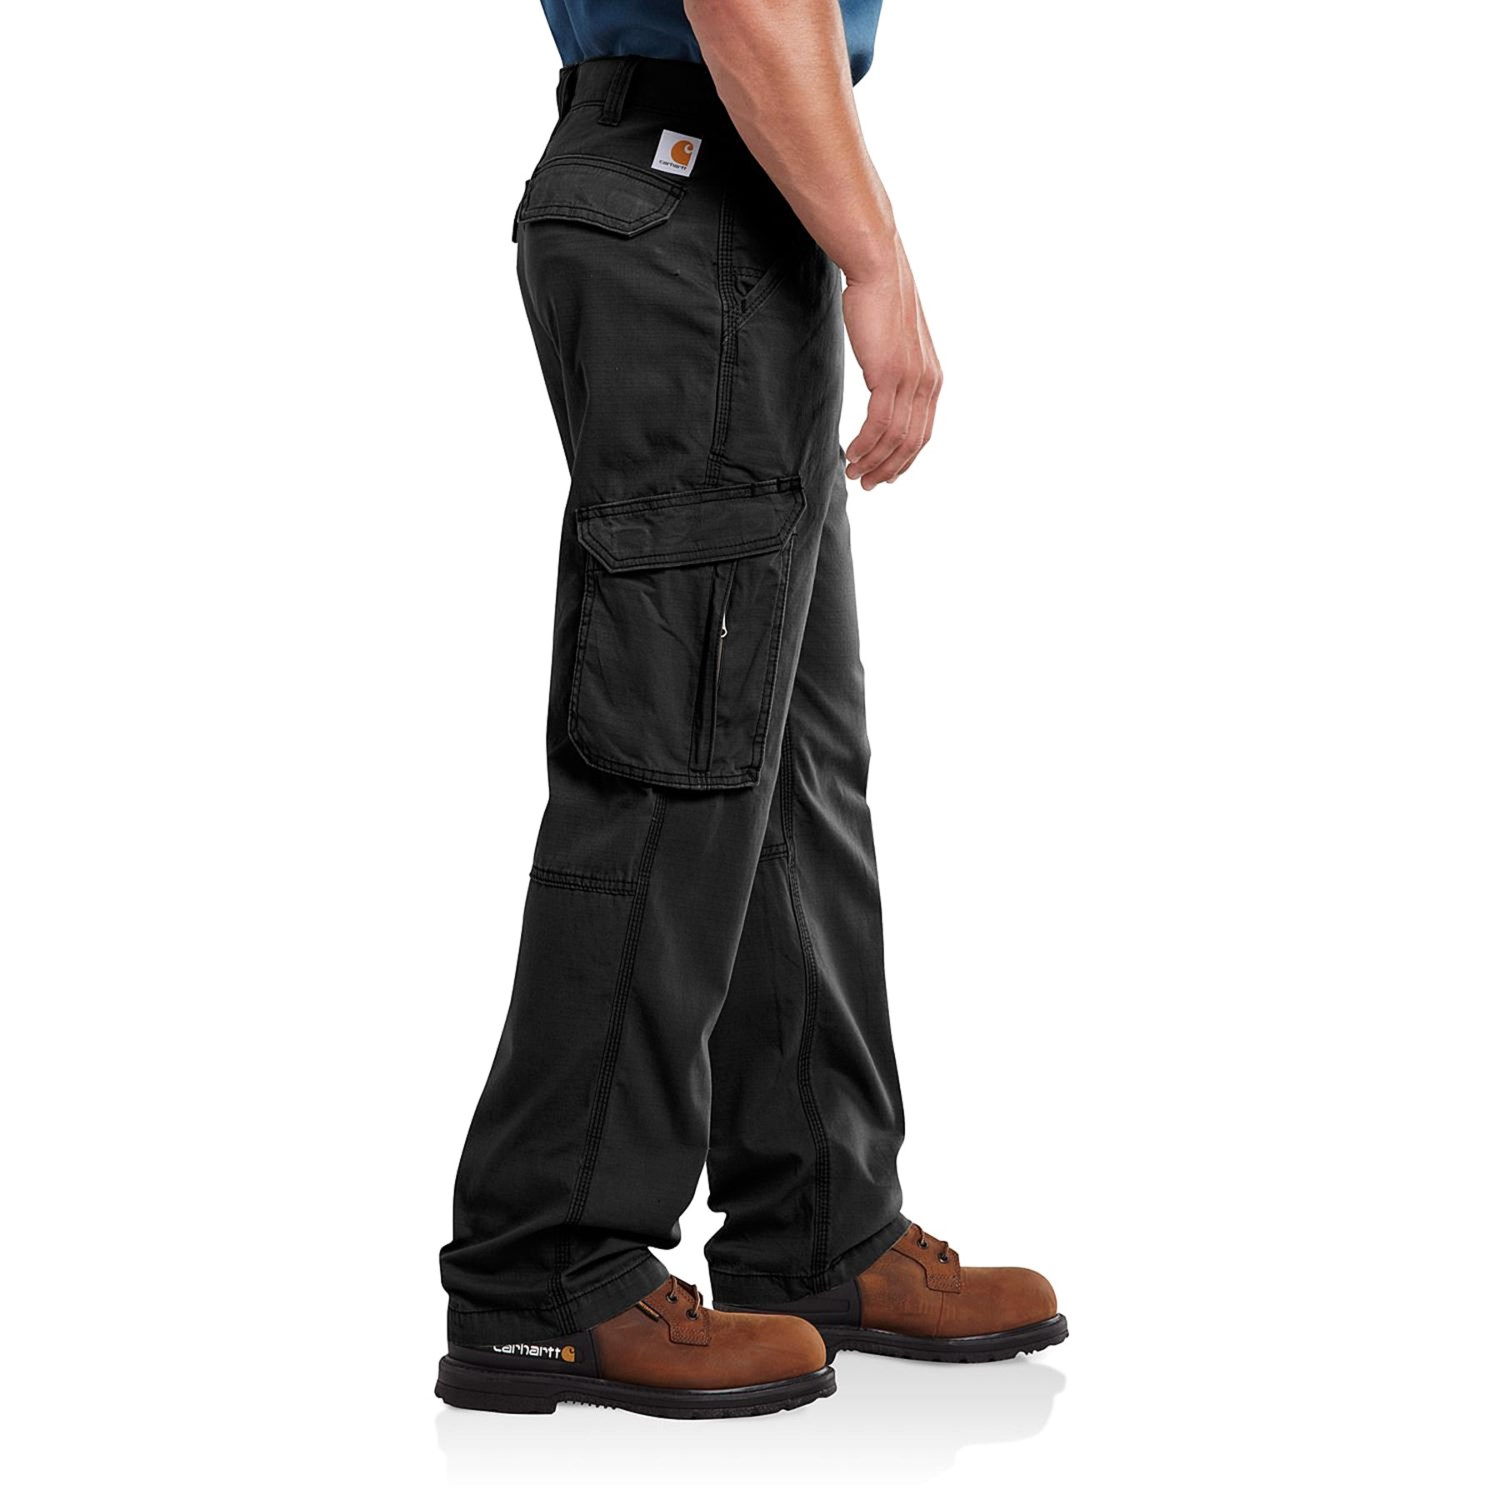 Carhartt Force Tappan Cargo Pants (For Men)